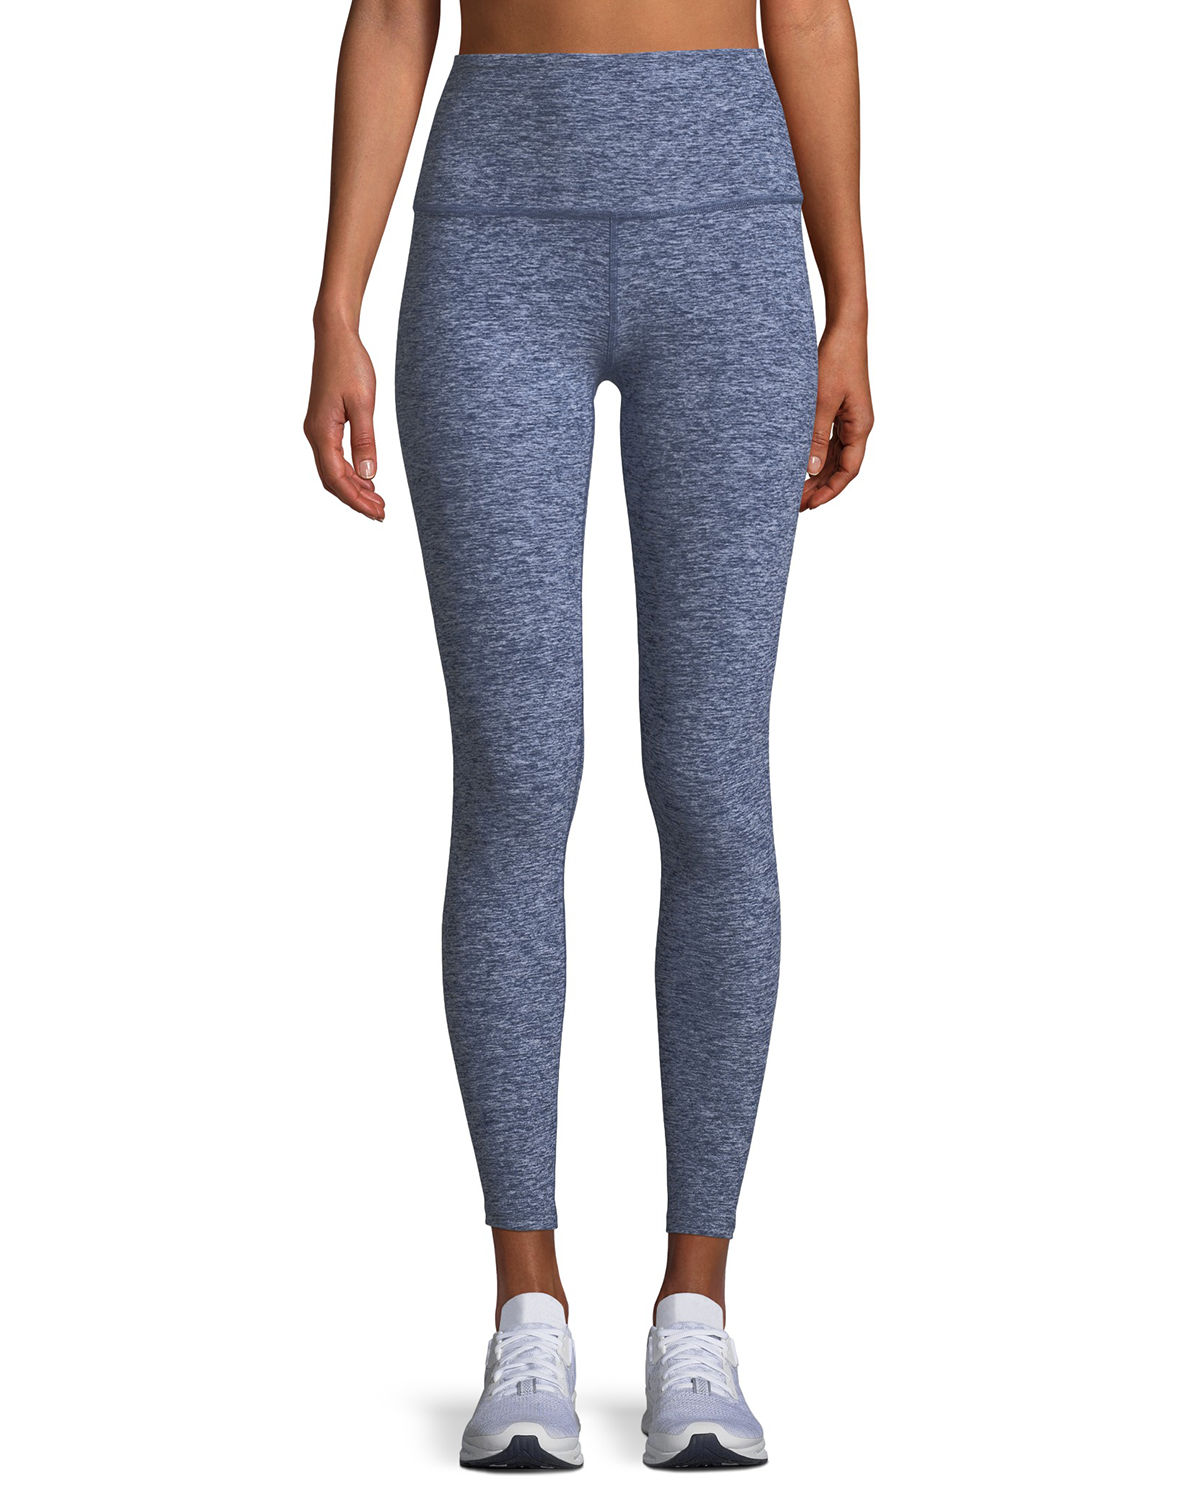 Caught in the Midi High-Waist Space-Dye Leggings